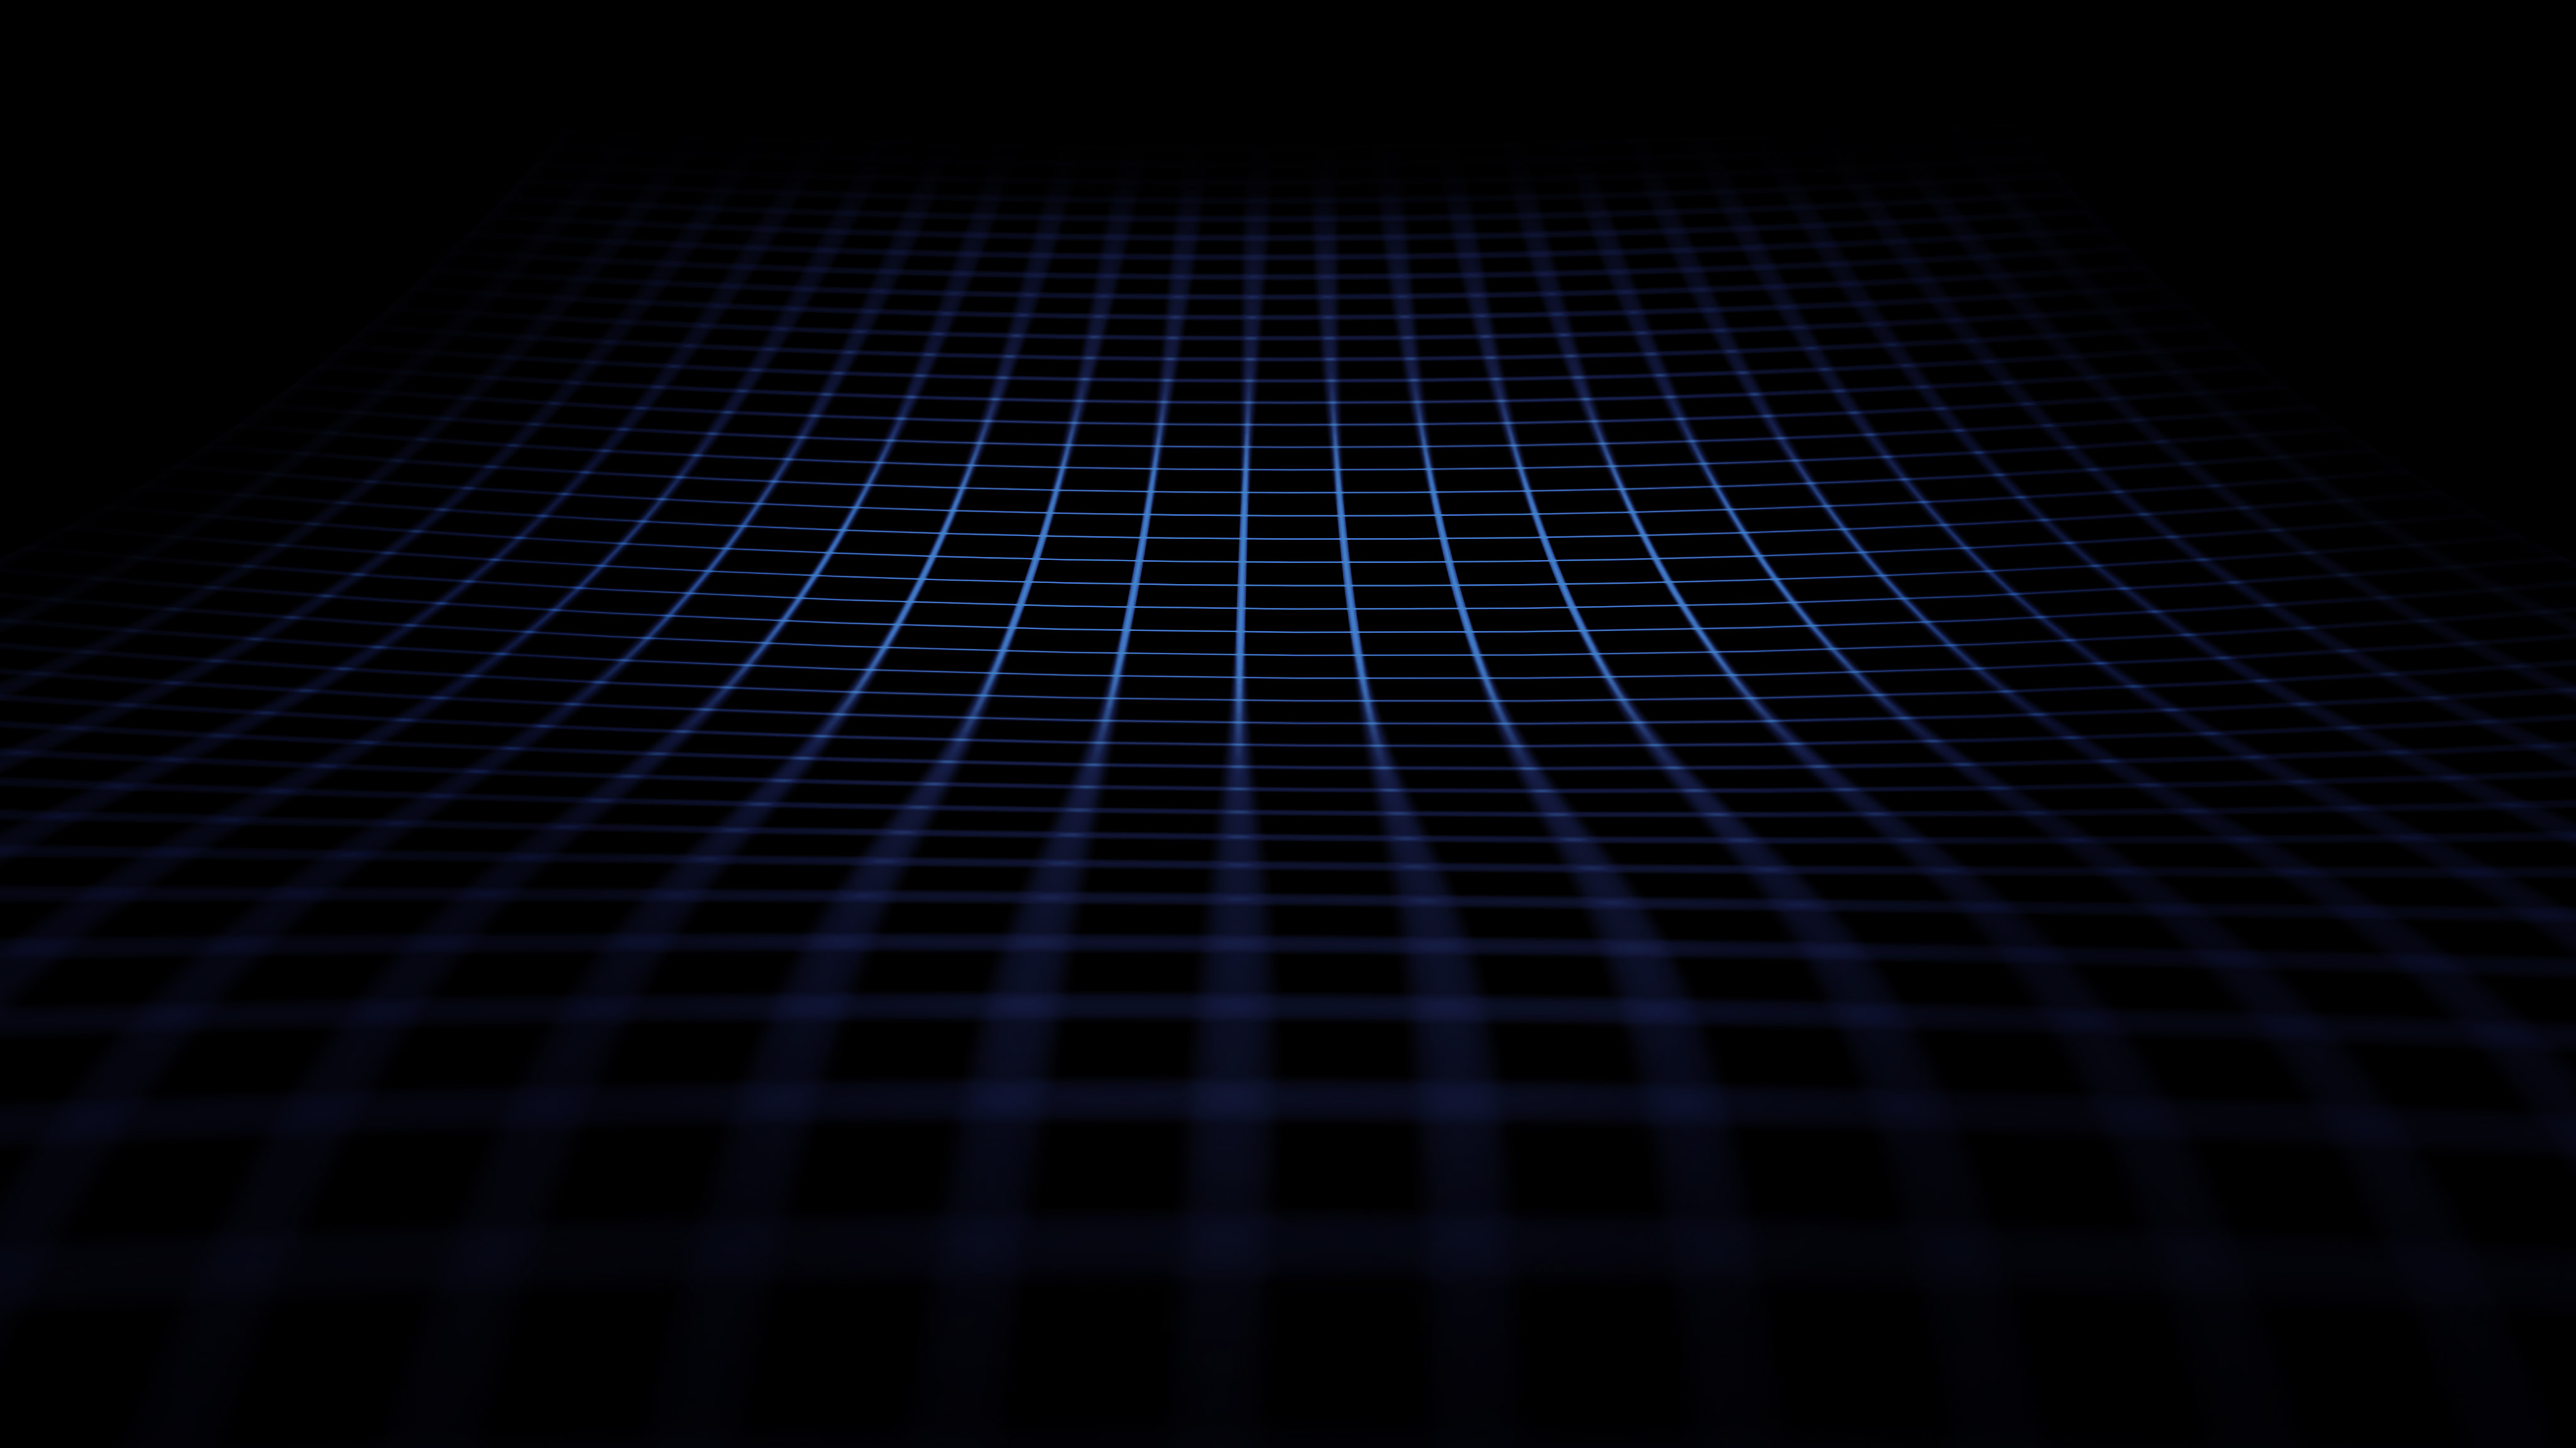 1920x1080 Abstracto Full Hd 1920x1080: Blue Grid Waves, HD Abstract, 4k Wallpapers, Images